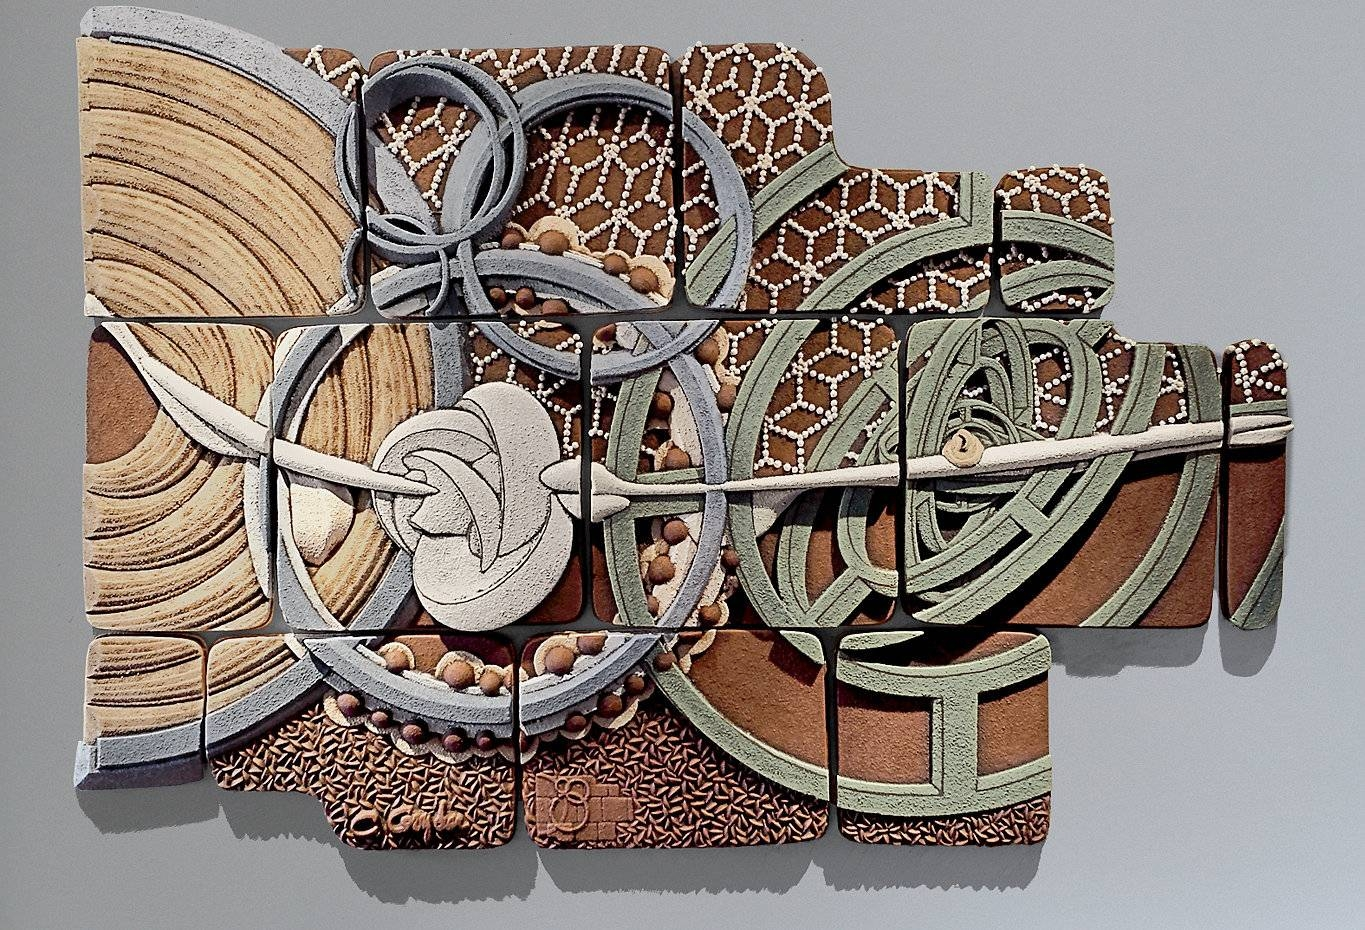 Outdoor Wall Decor Ceramic | Trellischicago Throughout Most Up To Date Outdoor Wall Sculpture Art (Gallery 3 of 20)